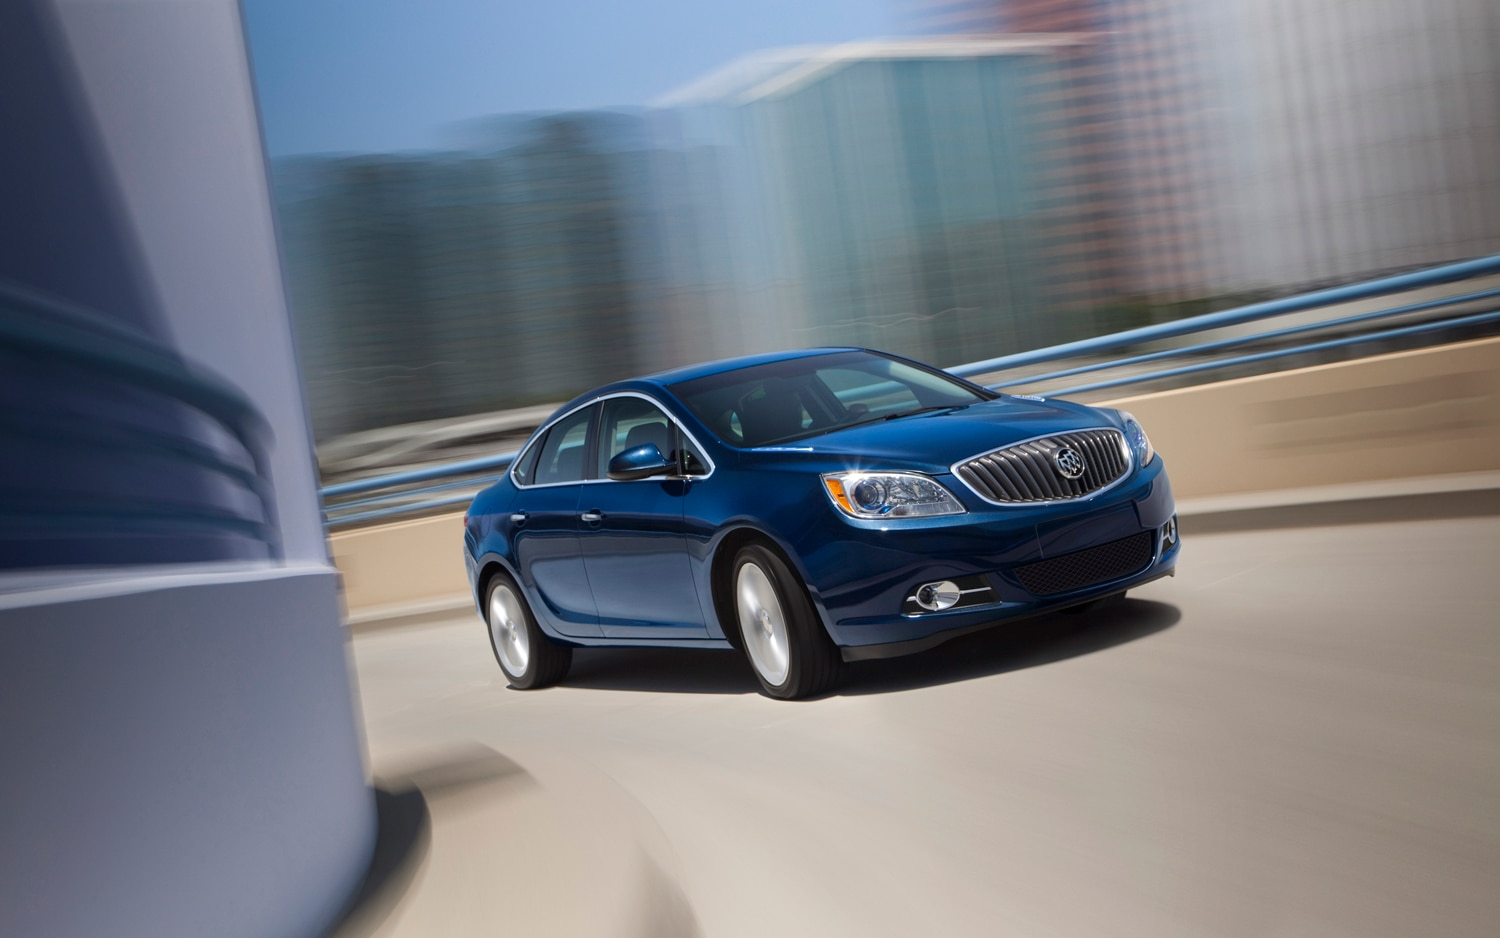 2013 Buick Verano Turbo Front Right Side View 2